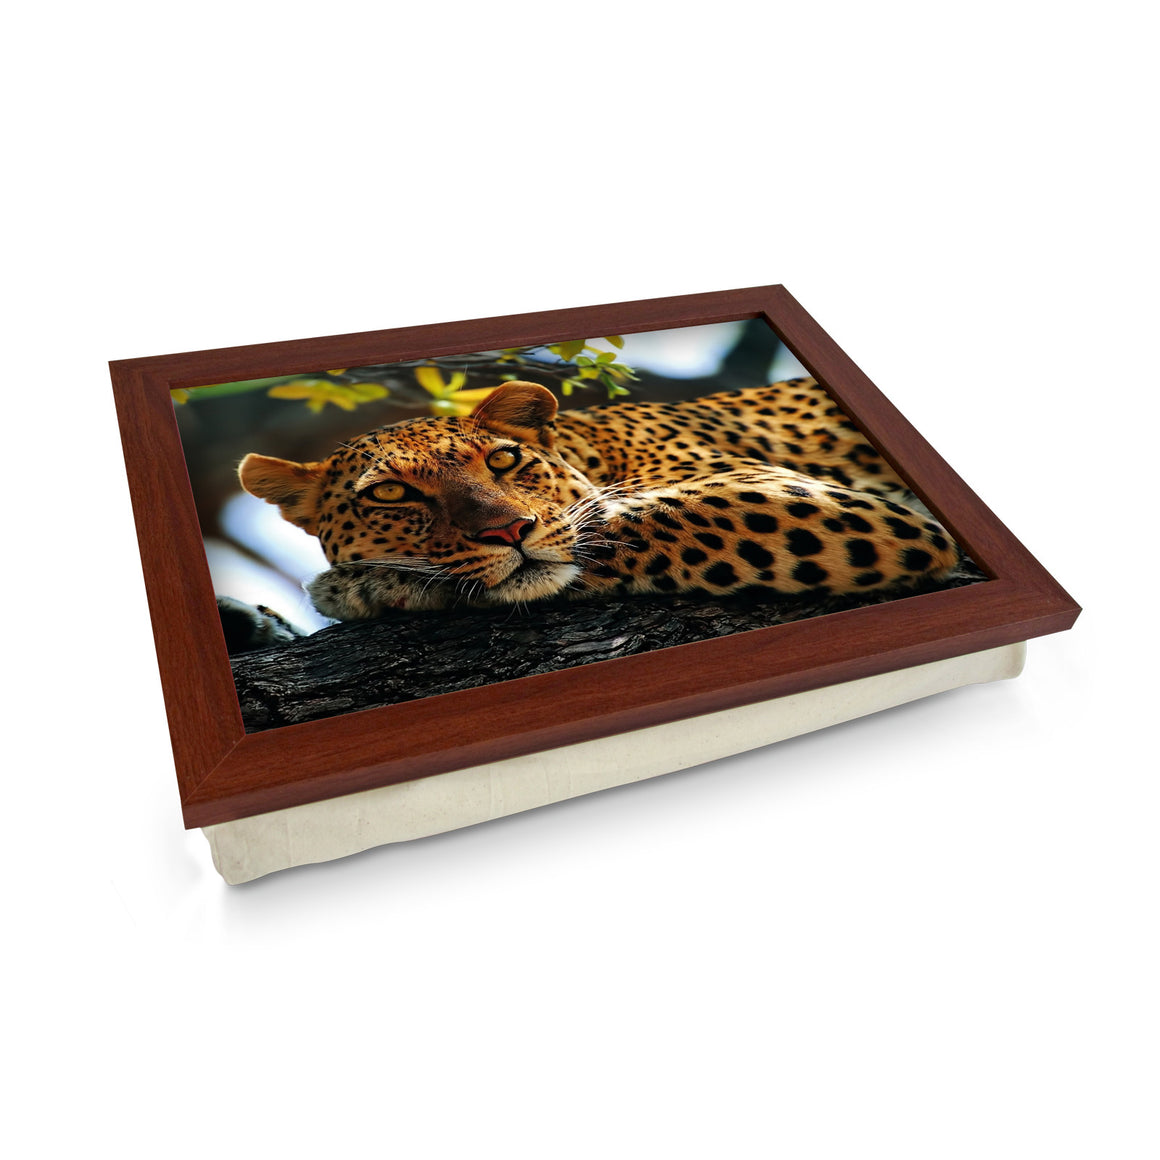 Leopard In Tree - L0047